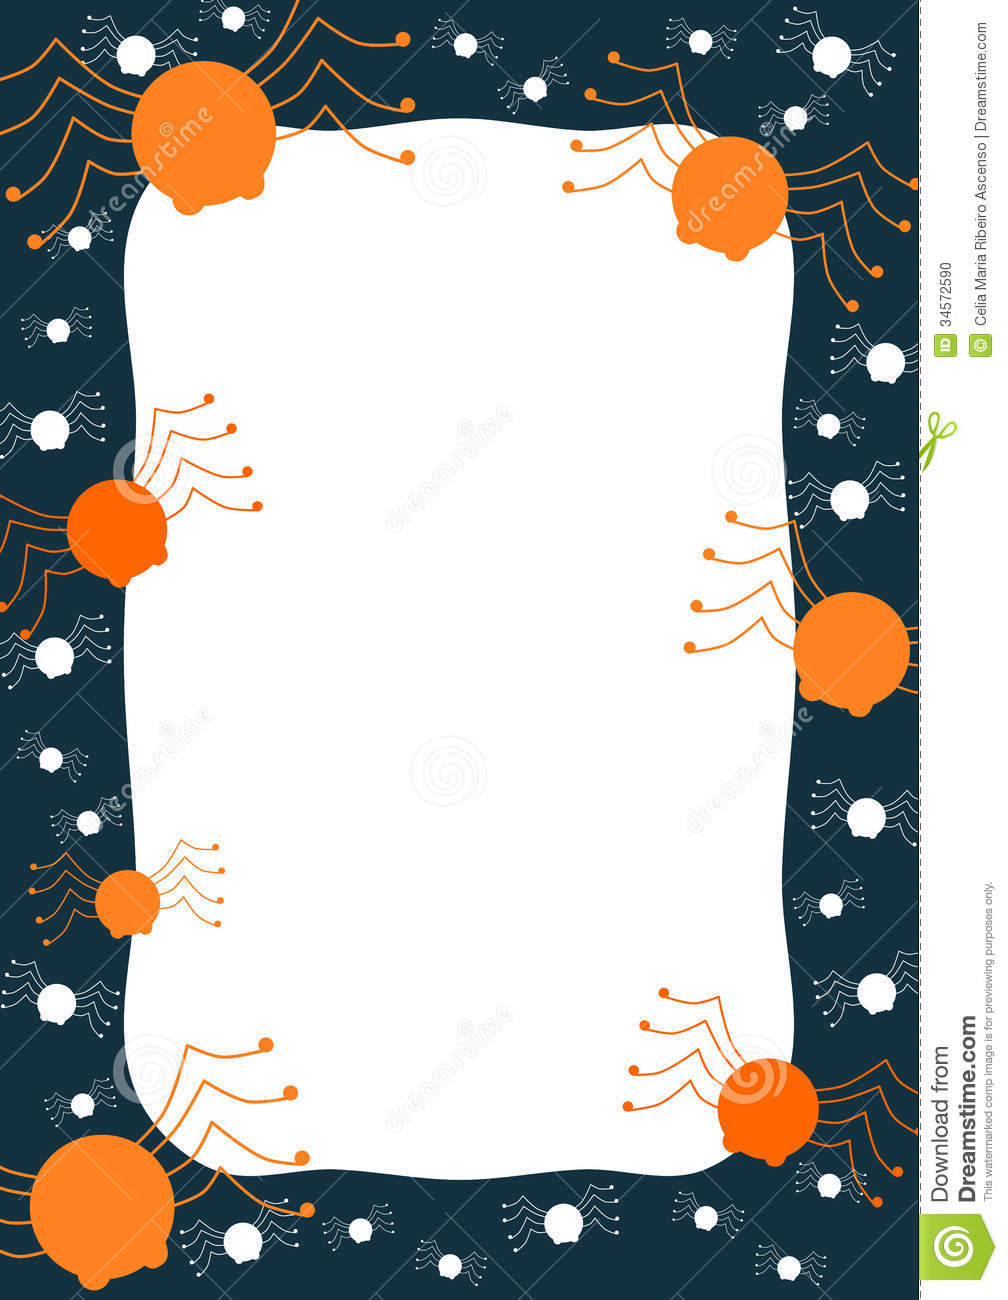 Halloween Party Invitation Card With Spiderwebs And Spiders